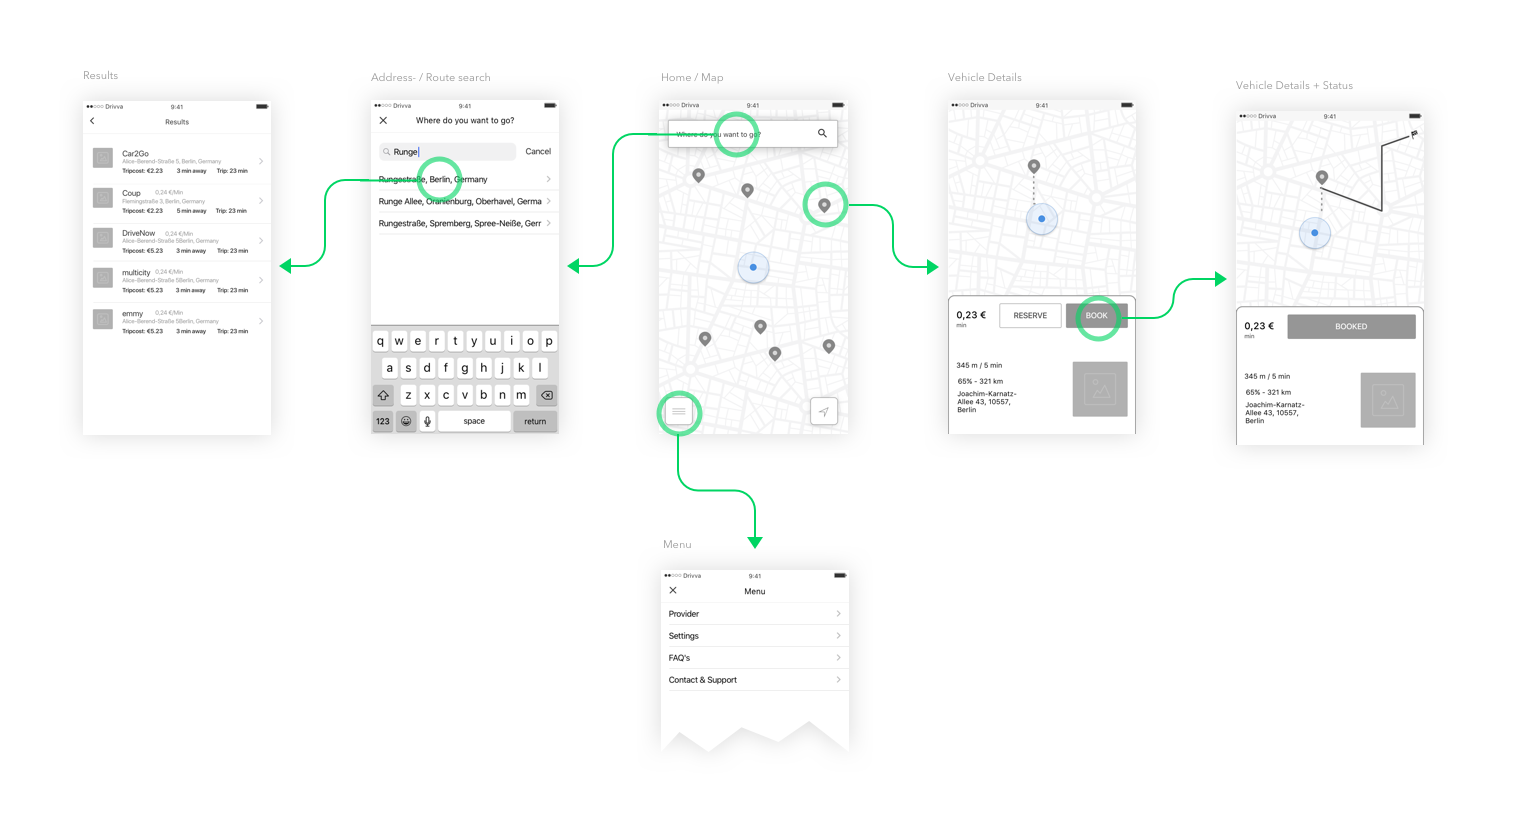 Robbin staack user experience designer when weve been confident with all that previous steps and its outcomes i started to design the user interface like i did with all the ux stuff as well nvjuhfo Choice Image